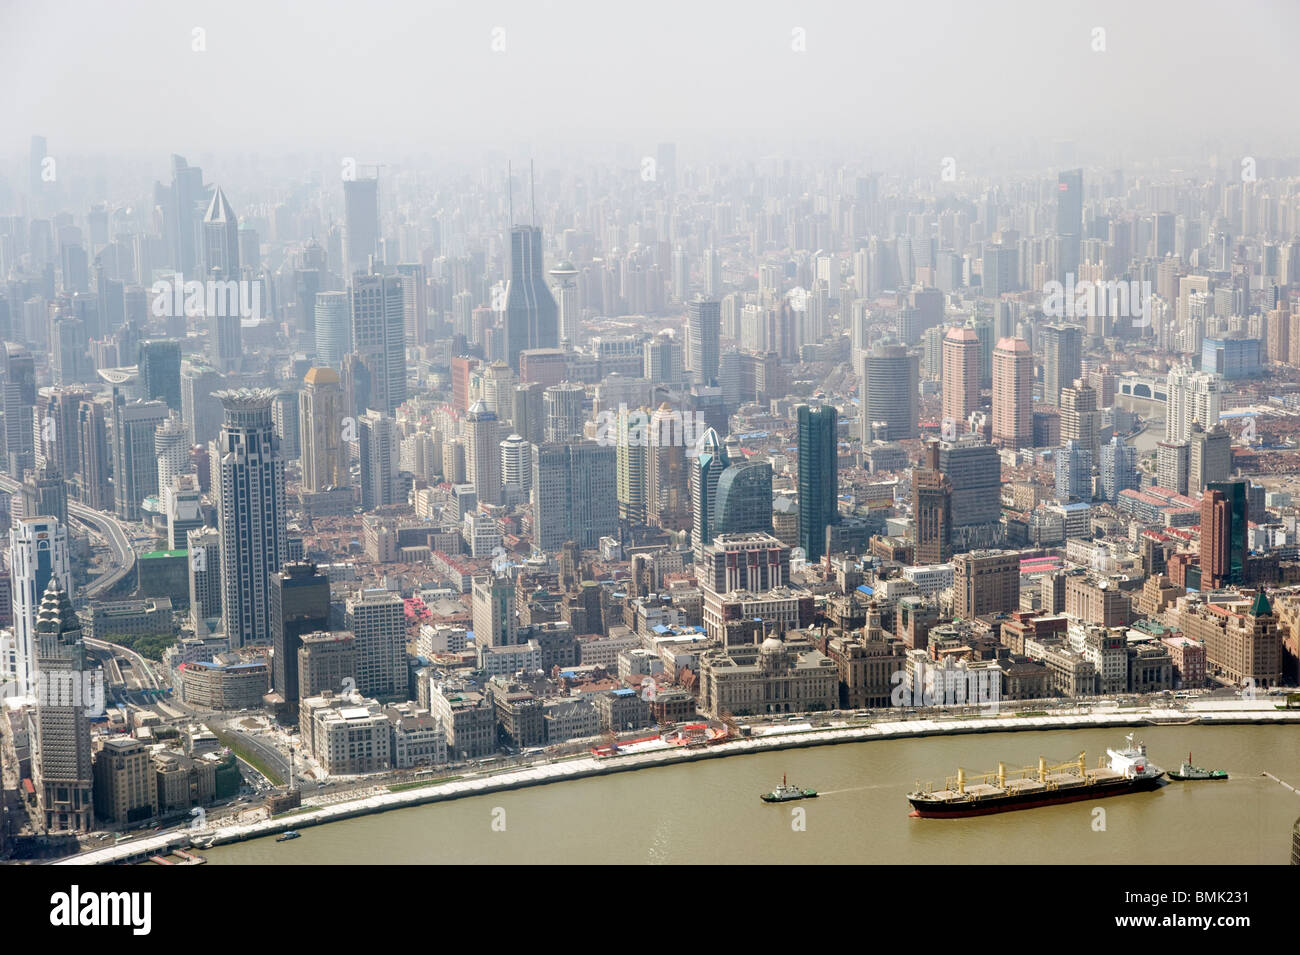 Smog and pollution over the city viewed from above, Shanghai, China - Stock Image